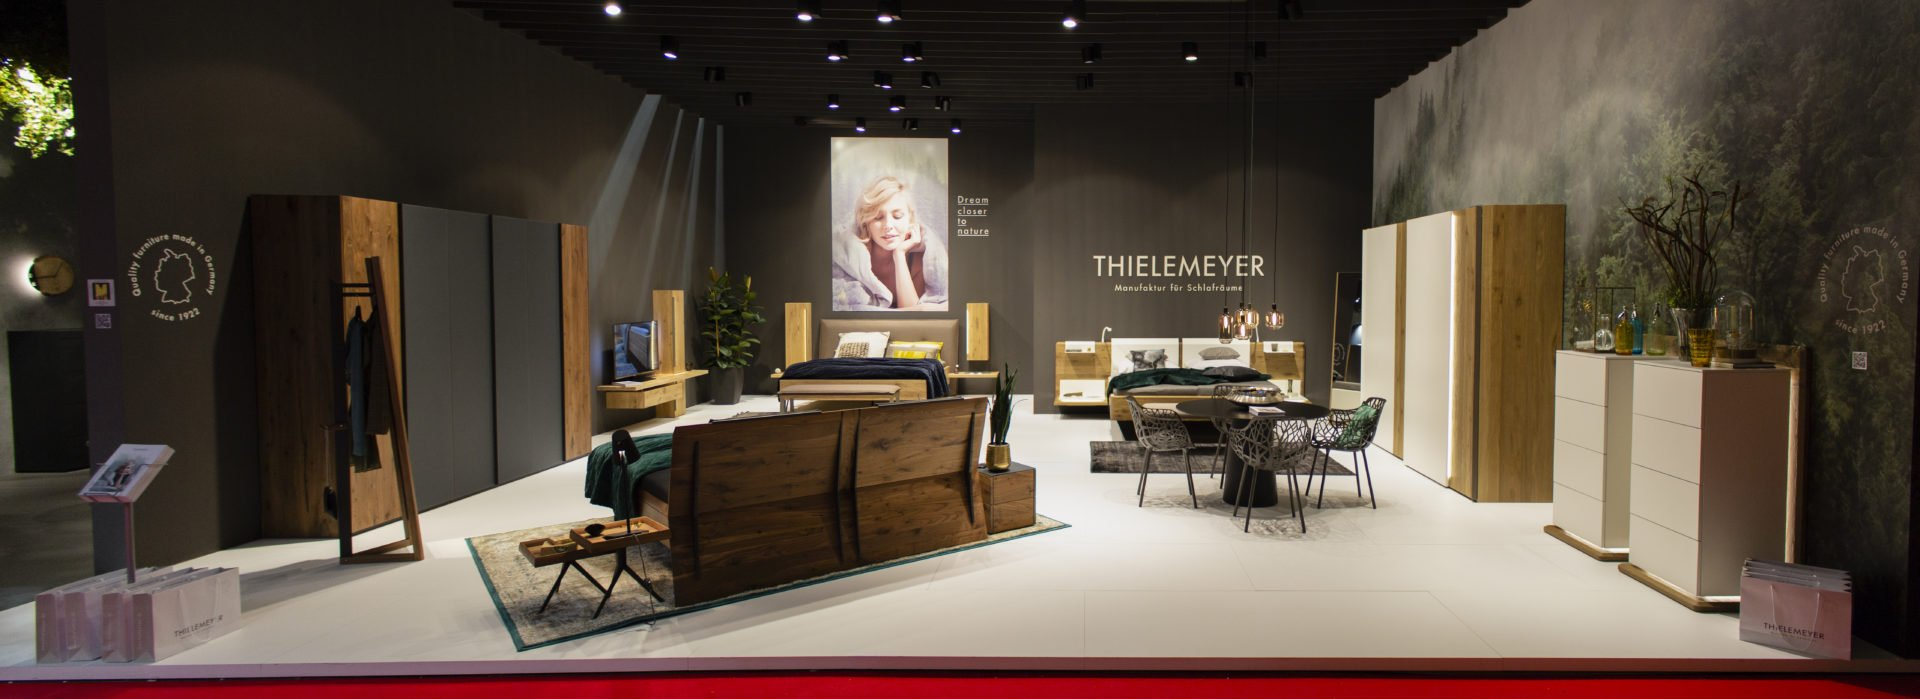 Thielemeyer Messeauftritt Design Messestand Siehr Messebau